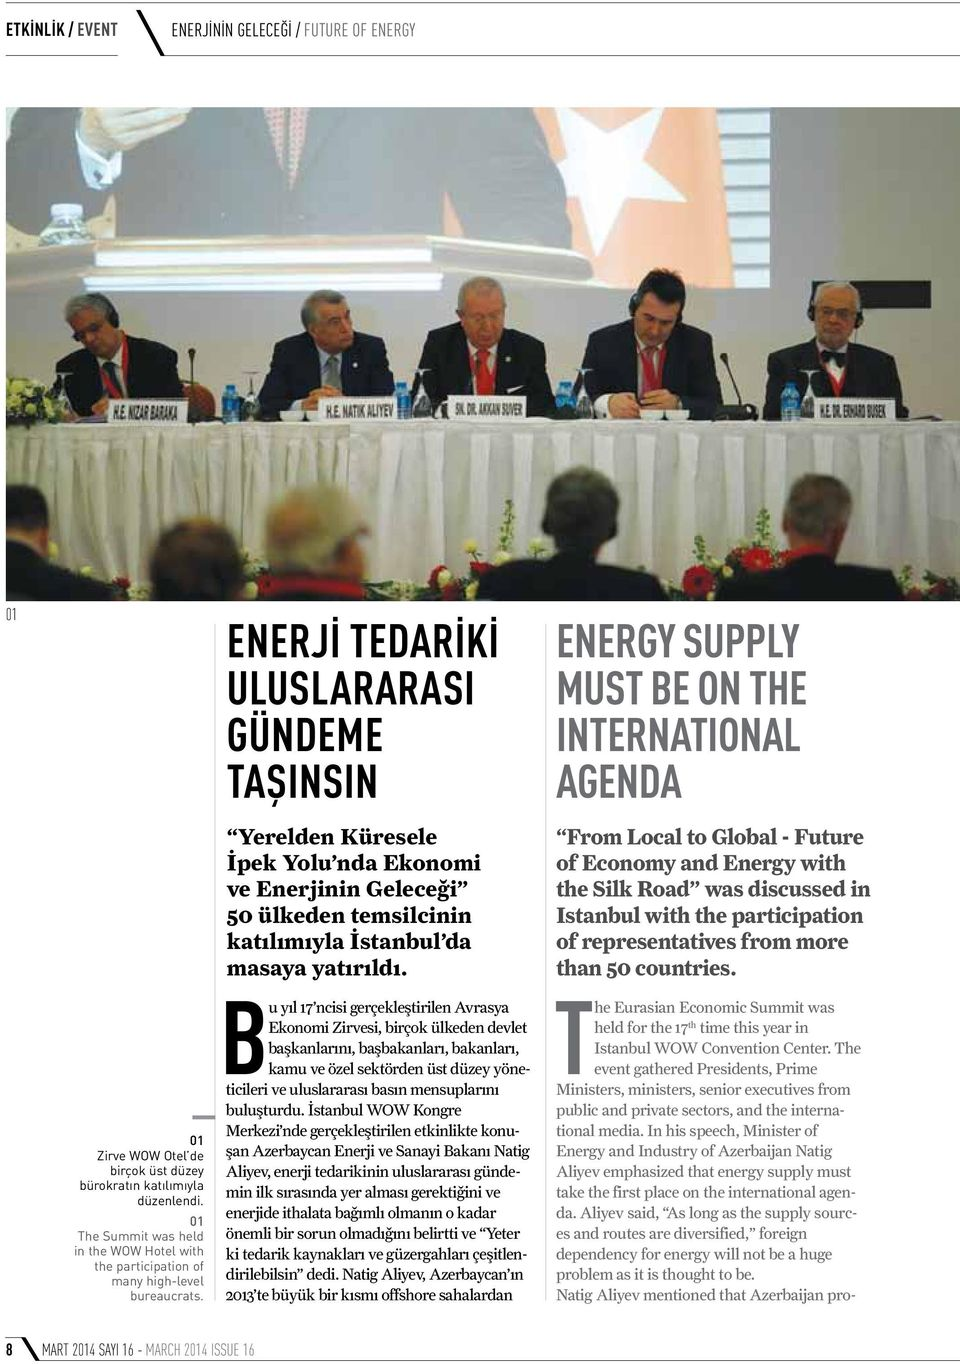 Energy Supply Must Be On the International Agenda From Local to Global - Future of Economy and Energy with the Silk Road was discussed in Istanbul with the participation of representatives from more